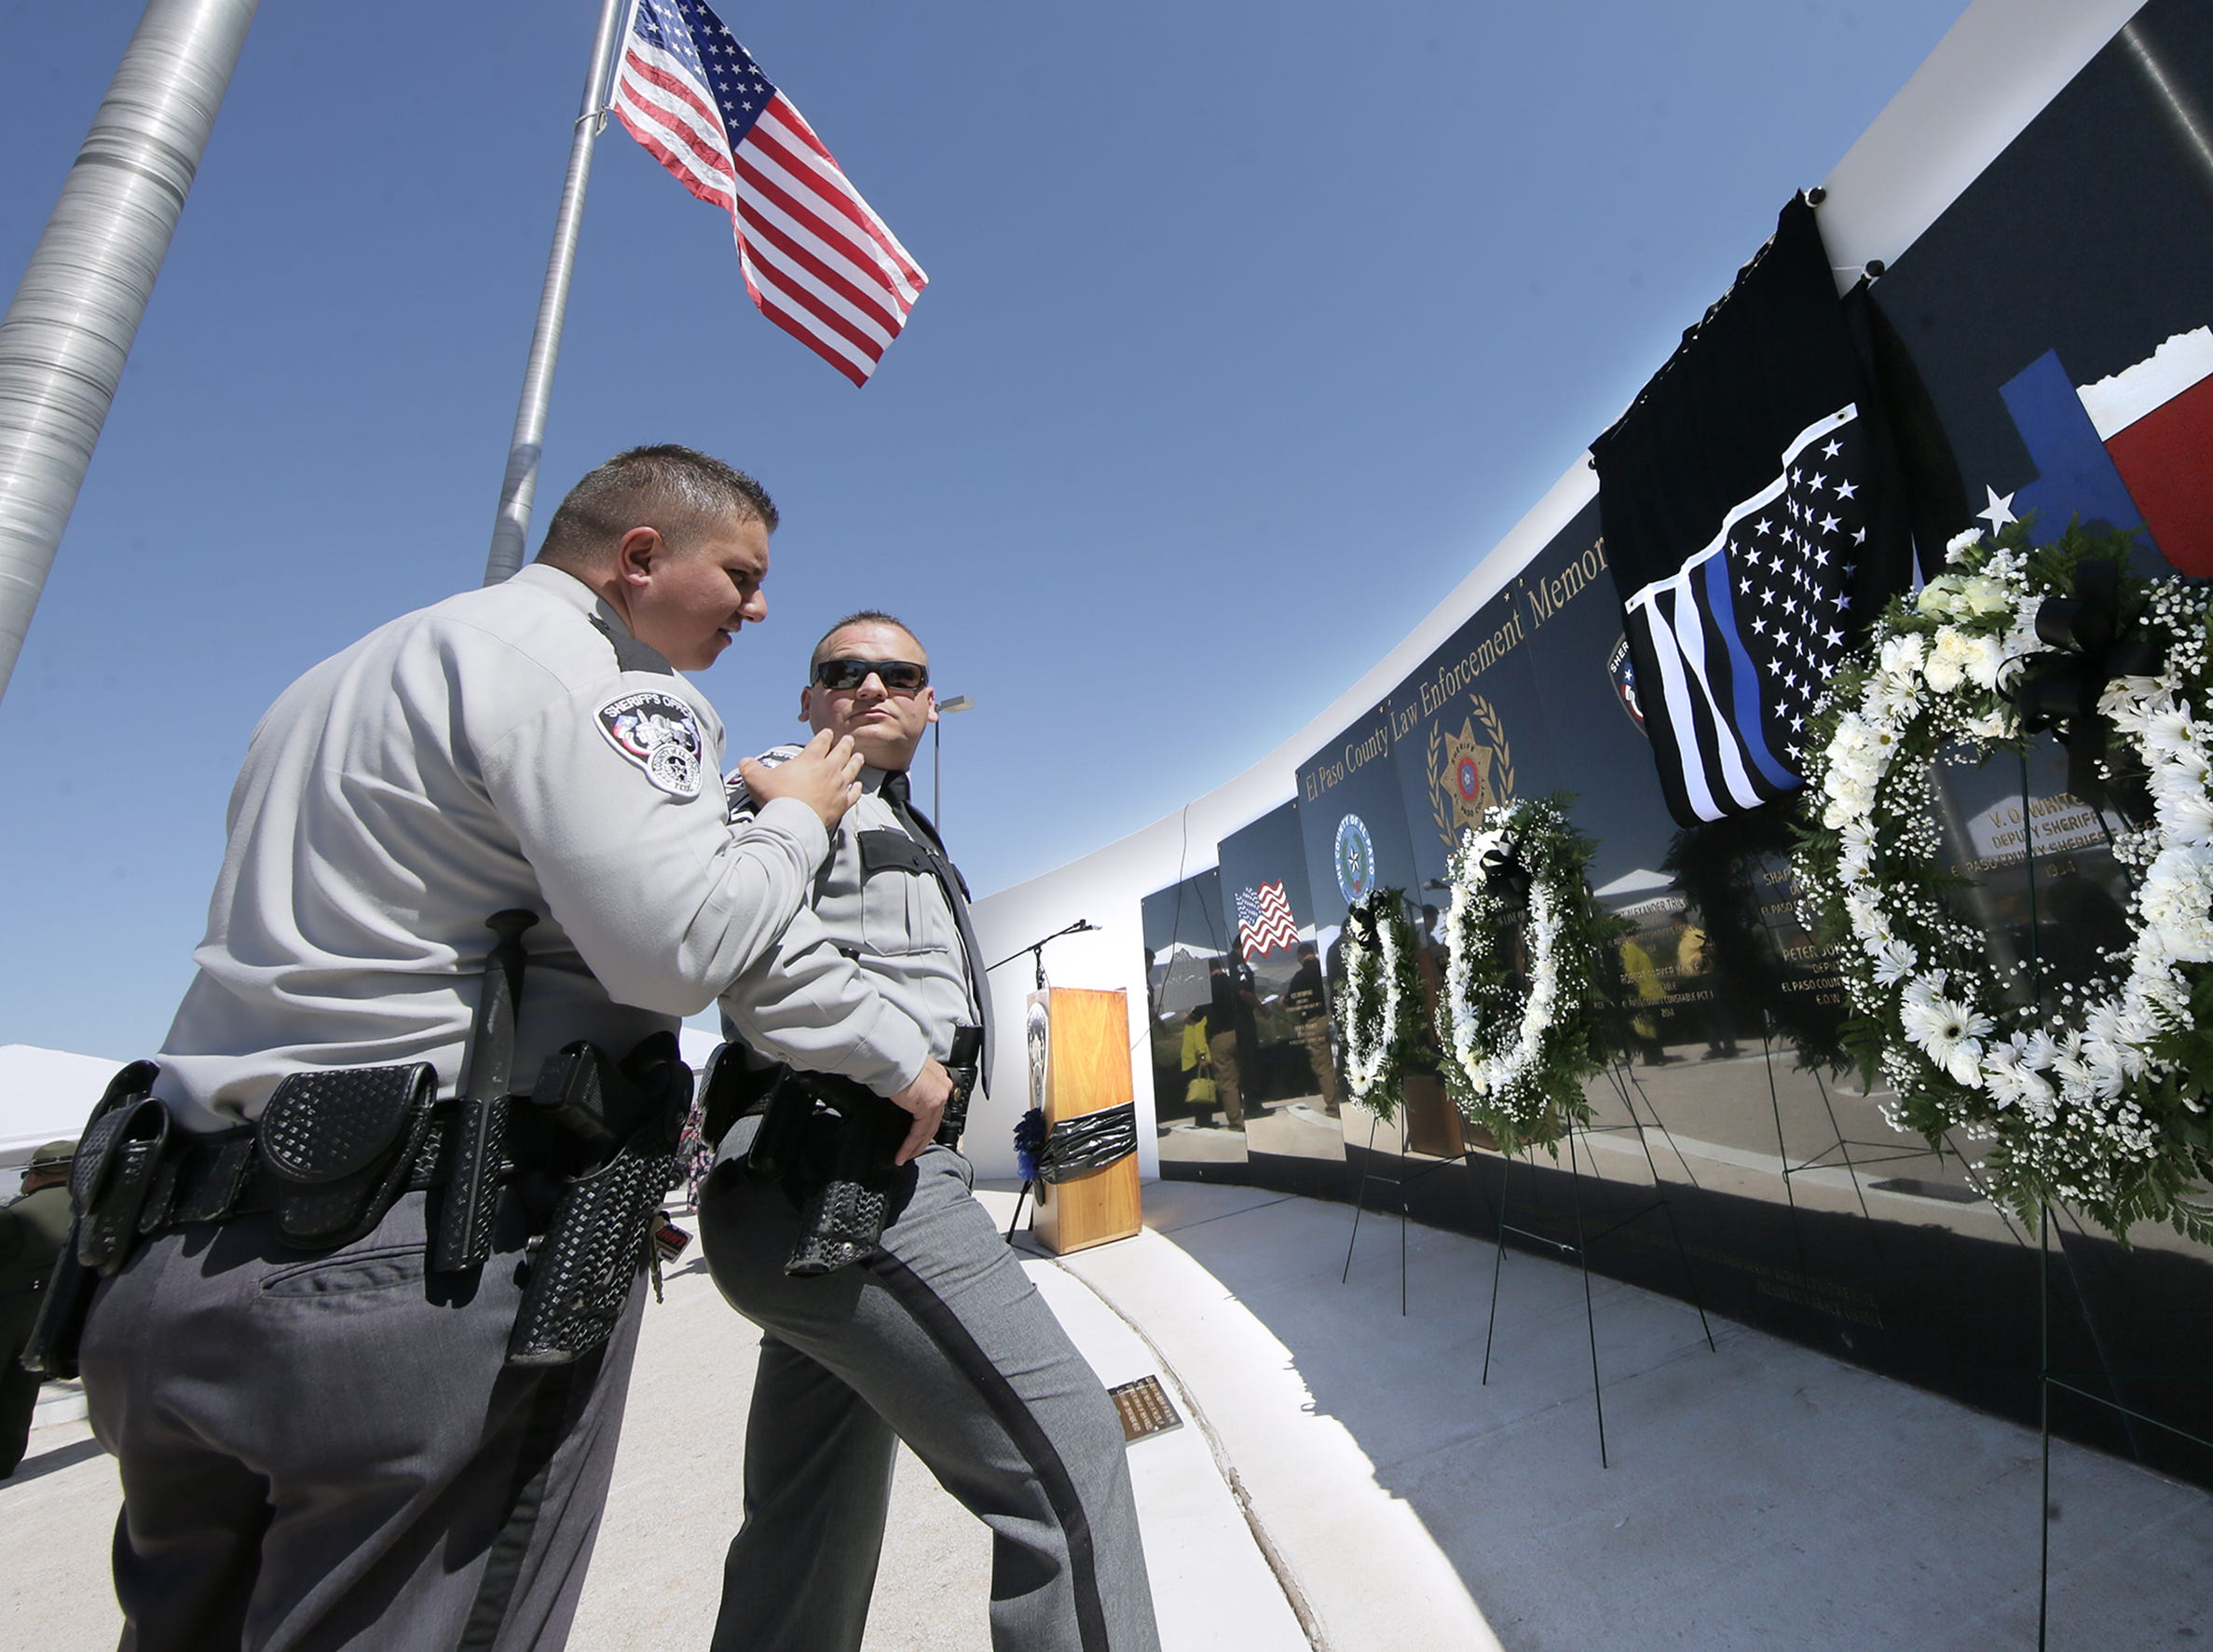 Detectives Darrell Rackley and James Nance reflect on their friendship with Deputy Peter Herrera after his name was revealed Tuesday, May 14, 2019, on the County Law Enforcement Memorial at the Sheriff's Office's headquarters in East El Paso.